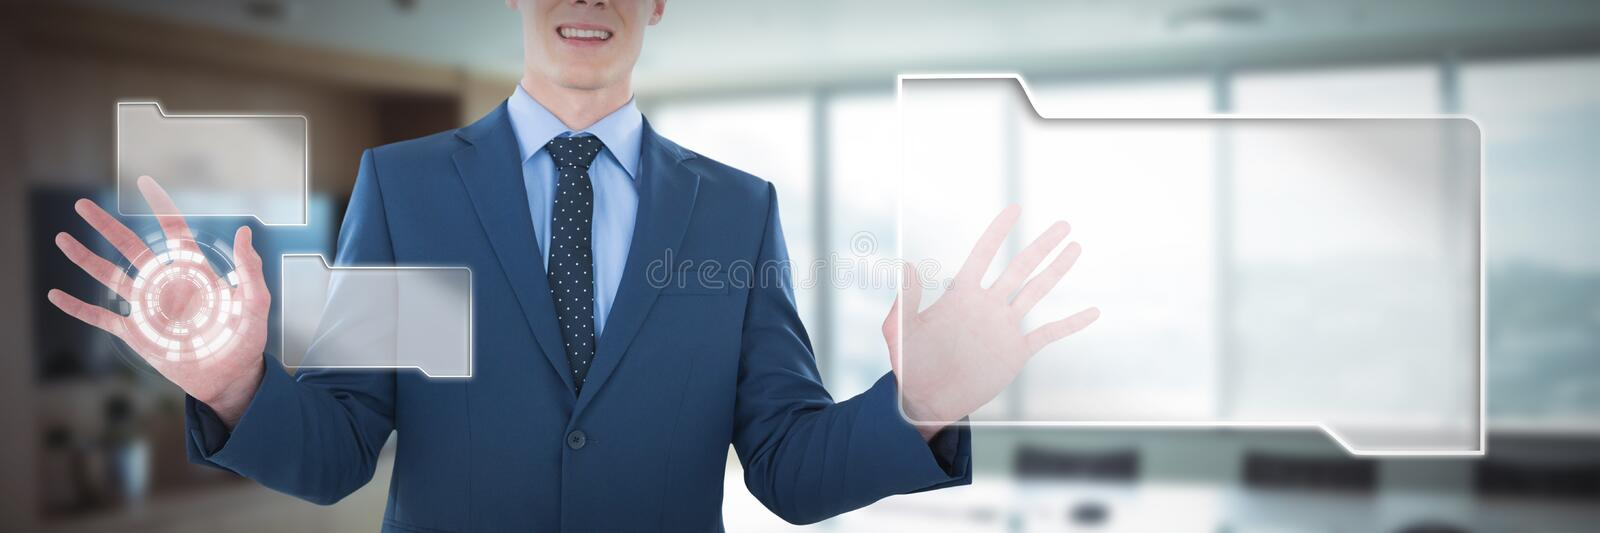 Mid section of smiling businessman using imaginary screen against empty boardroom in office royalty free stock image